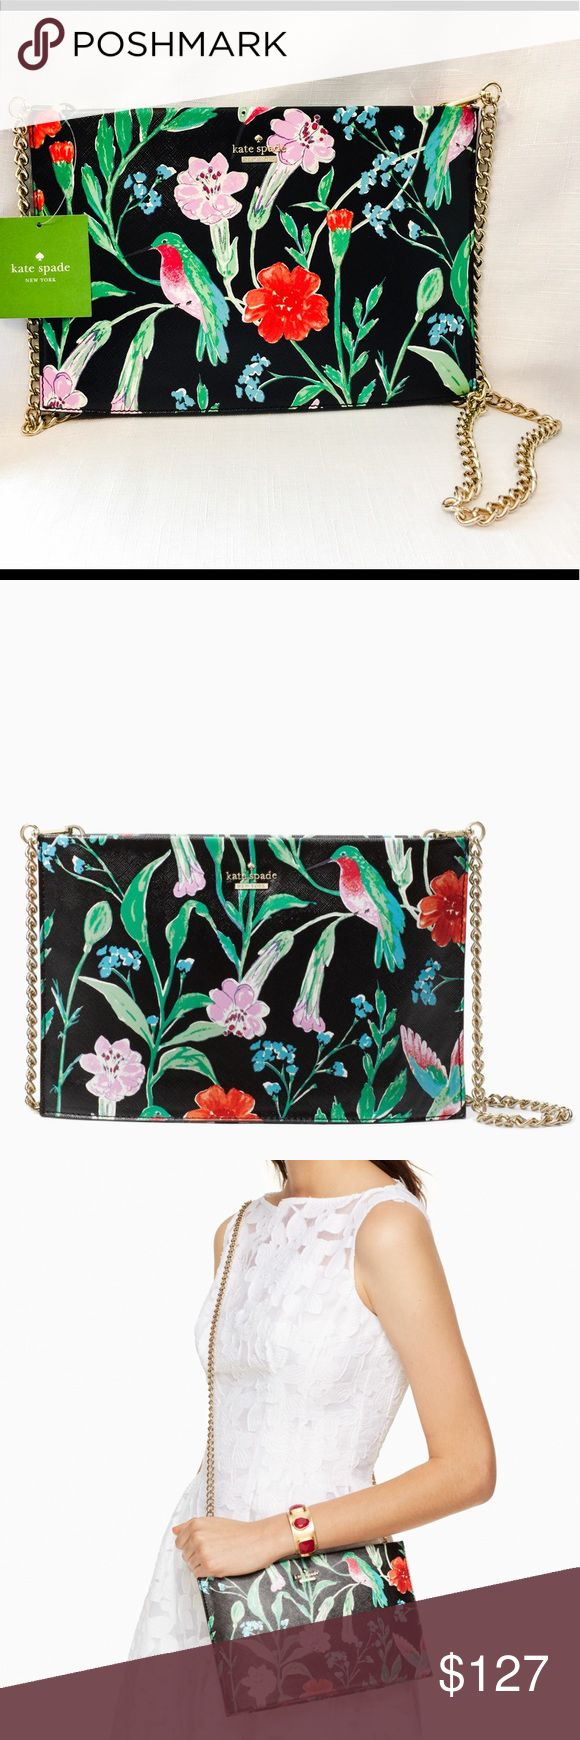 New Kate Spade Cameron Street Jardin Sima! What a delight it was to photograph this bag! ☺️ The colors are 😍😍😍.  With a unique and very pretty exterior, this one is sure to get you lots of compliments.  This is a clutch with a removable snake chain.  So wear it on your shoulders or just carry it around 😏 It also has a zip top closure as well as an interior slide pocket. Dust bag included. kate spade Bags Shoulder Bags